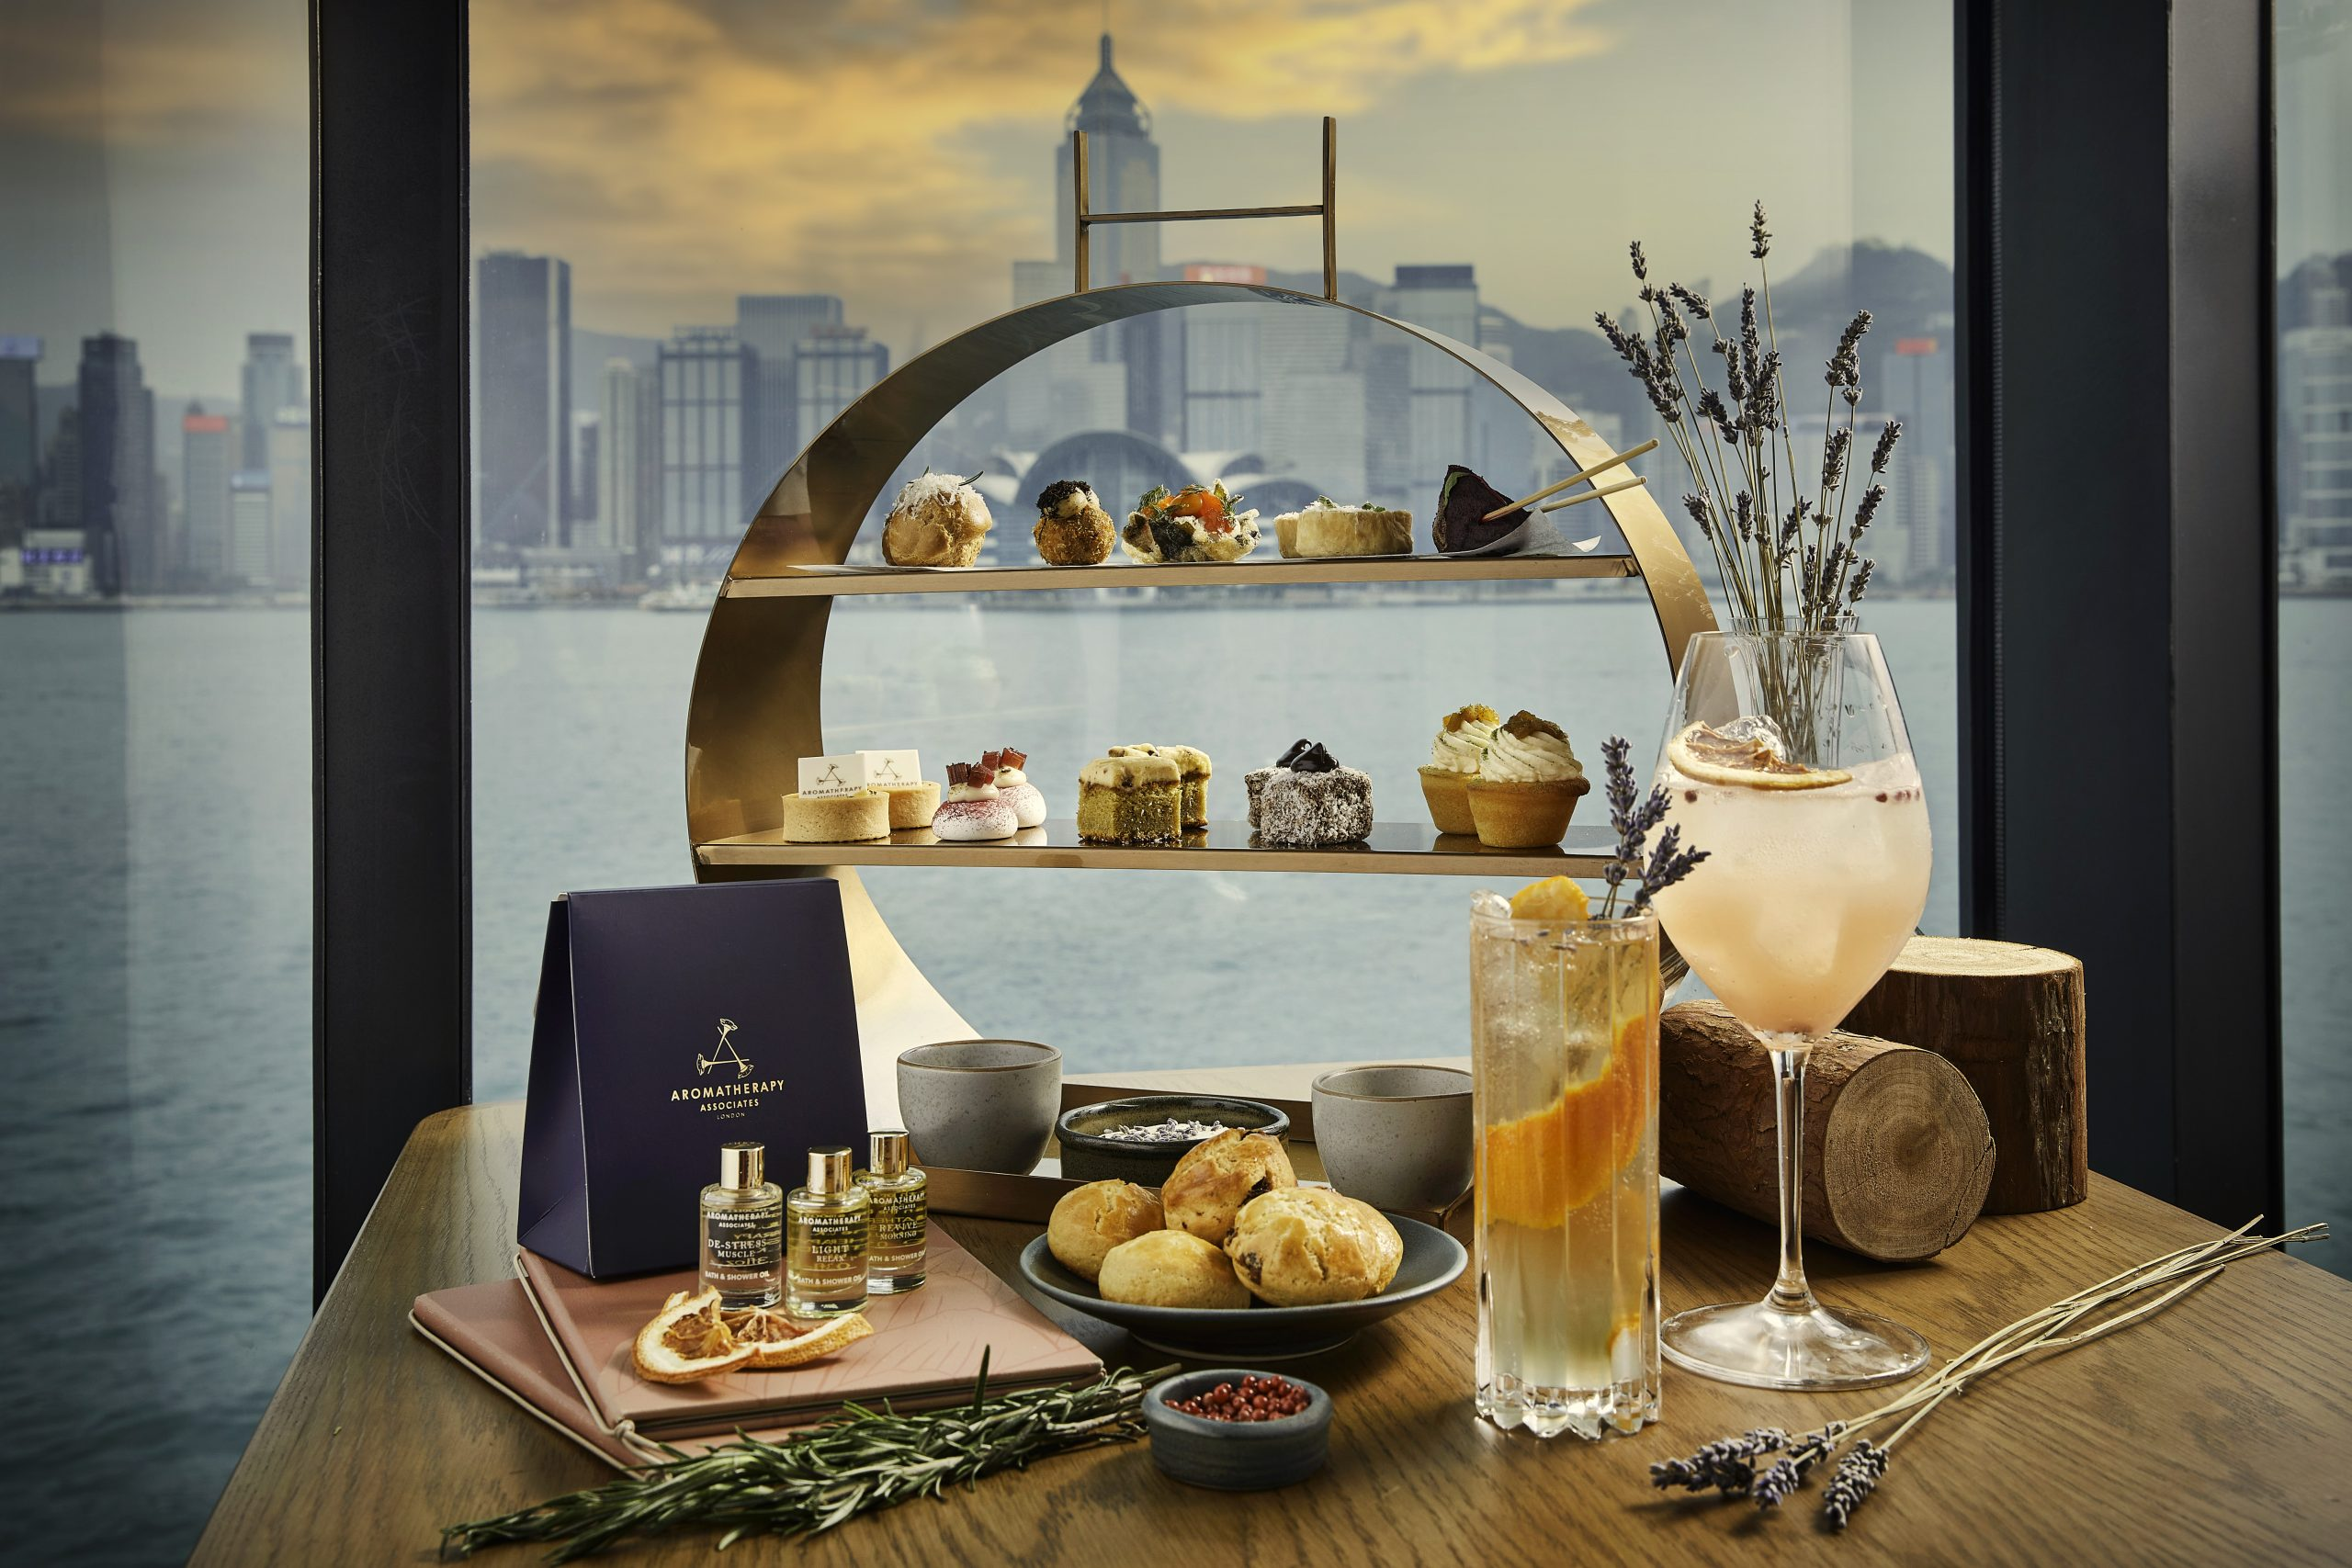 HUE serves on of the best afternoon teas in Hong Kong